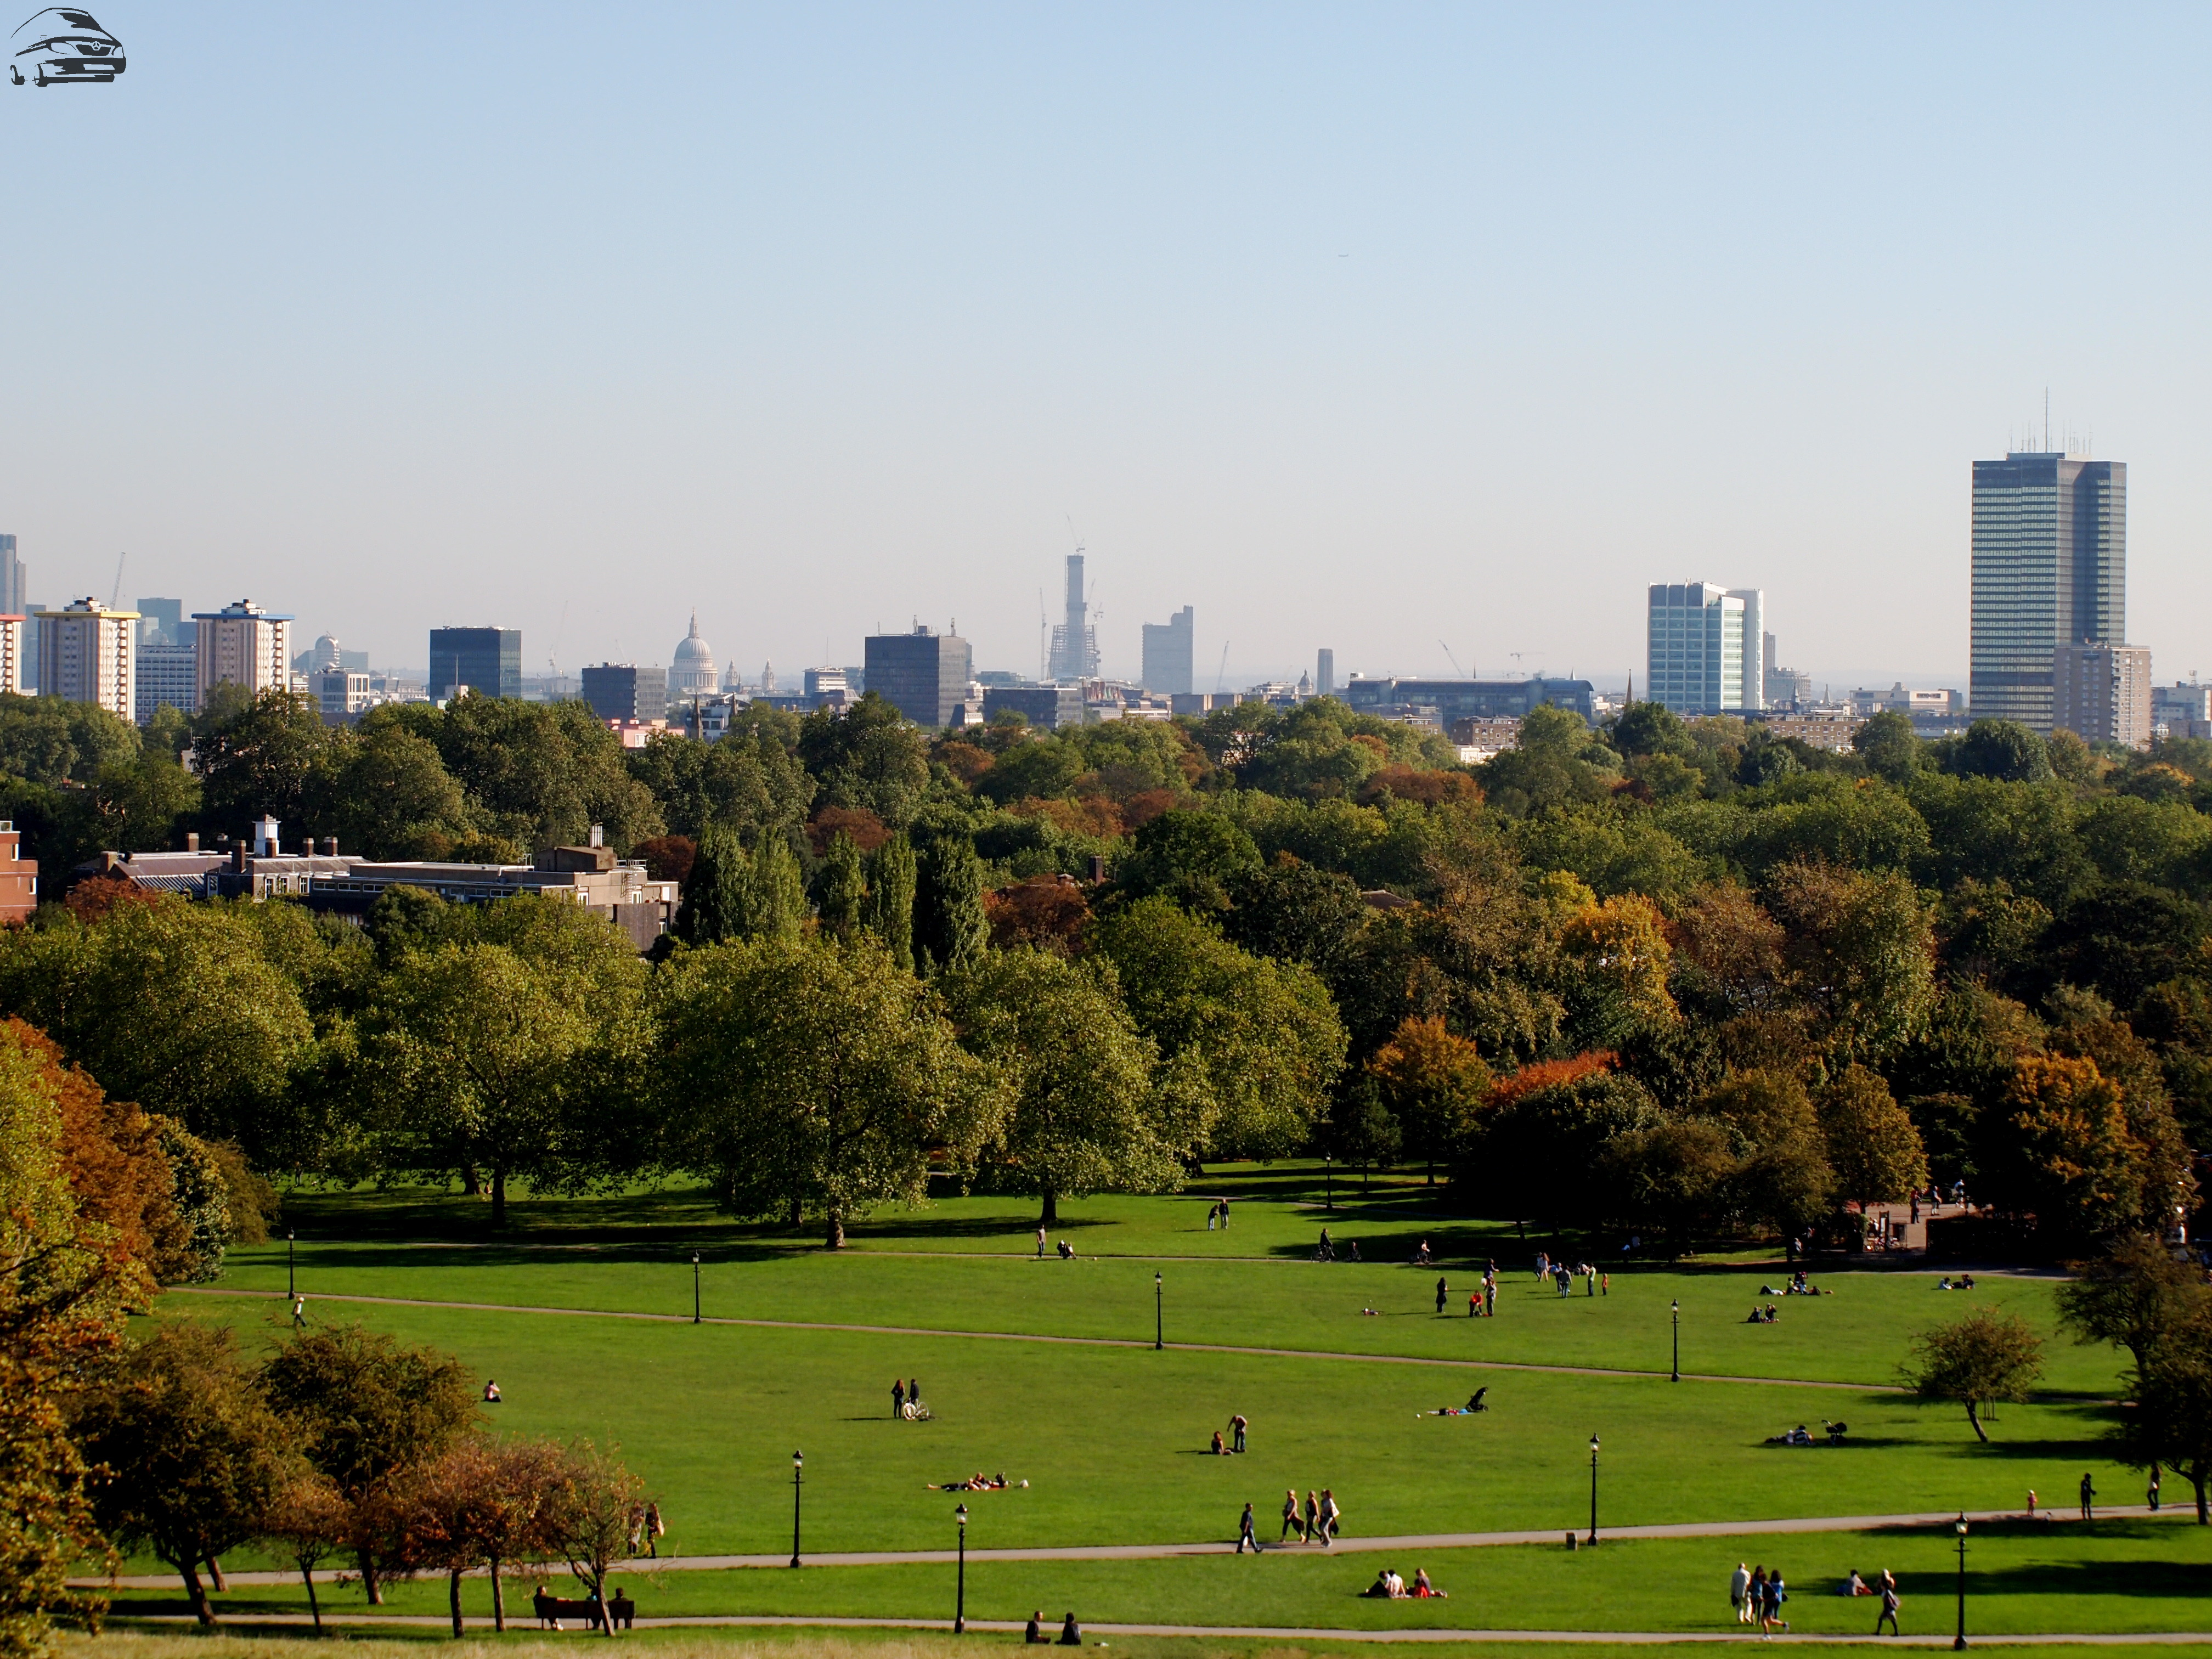 NW1, NW3, NW8 Primrose Hill